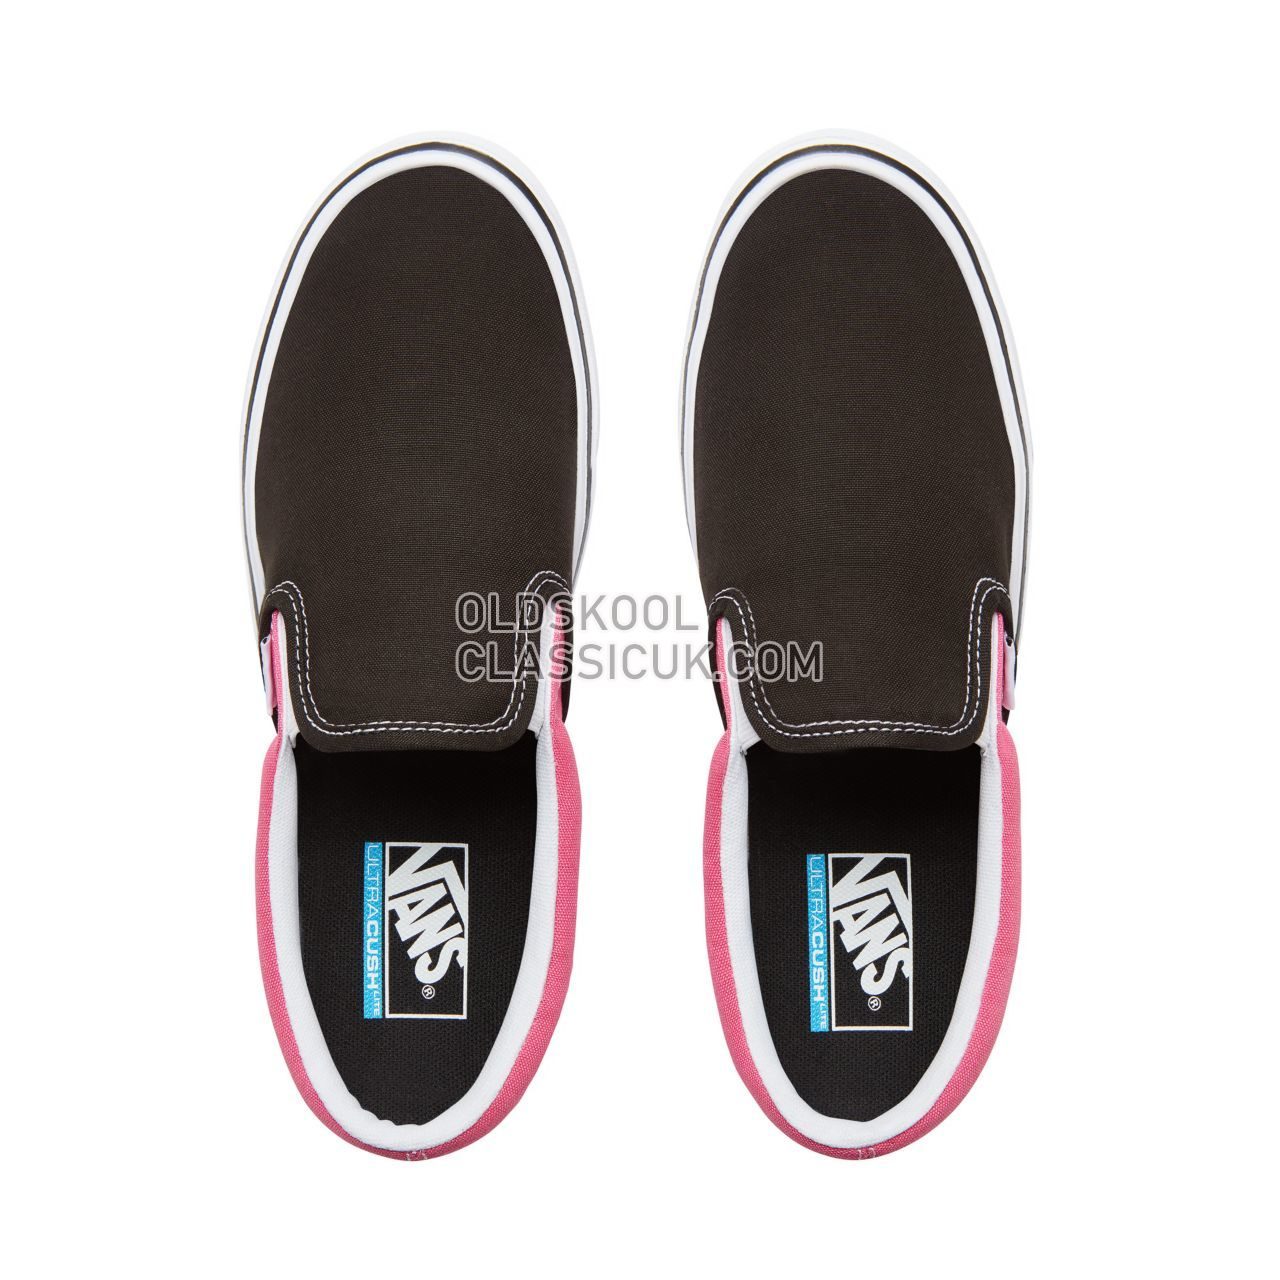 Vans 2-Tone Slip-On Lite Sneakers Mens (2Tone) Black/Magenta VA2Z63UB0 Shoes